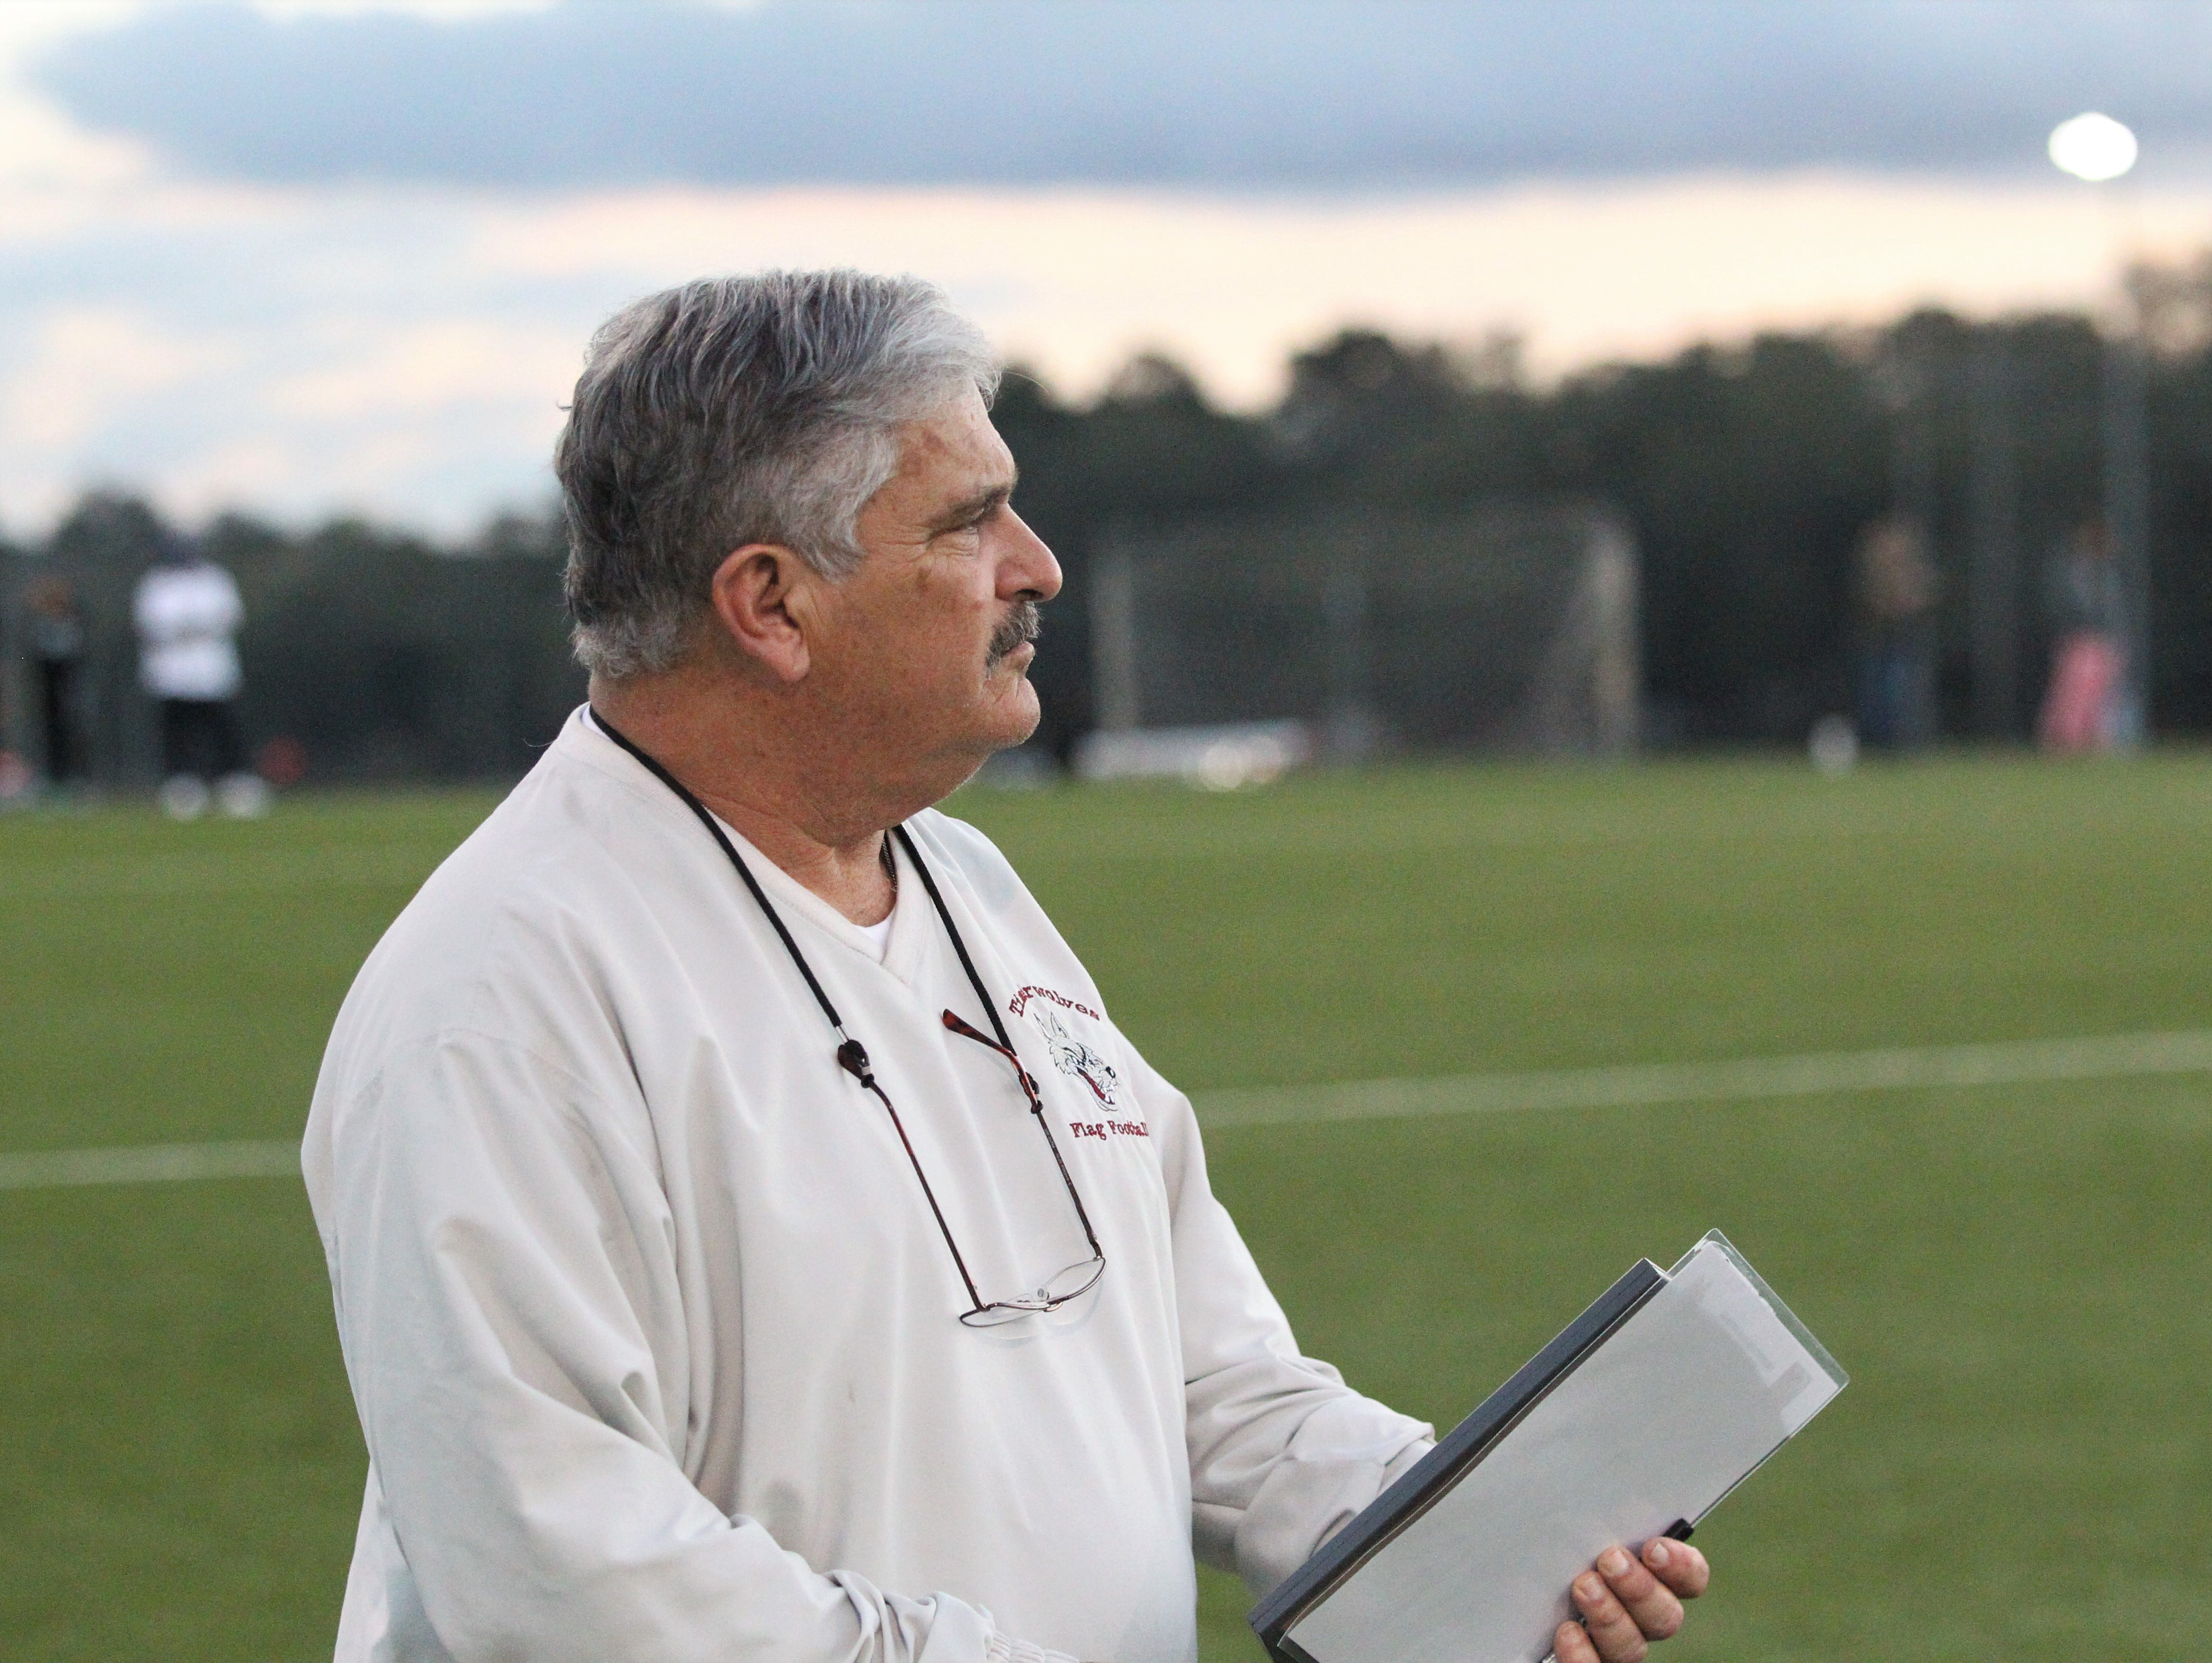 Chiles flag football coach Stan Goldstein watches play during the 2019 flag football preseason classic at Florida A&M's intramural turf fields on Feb. 27, 2019.